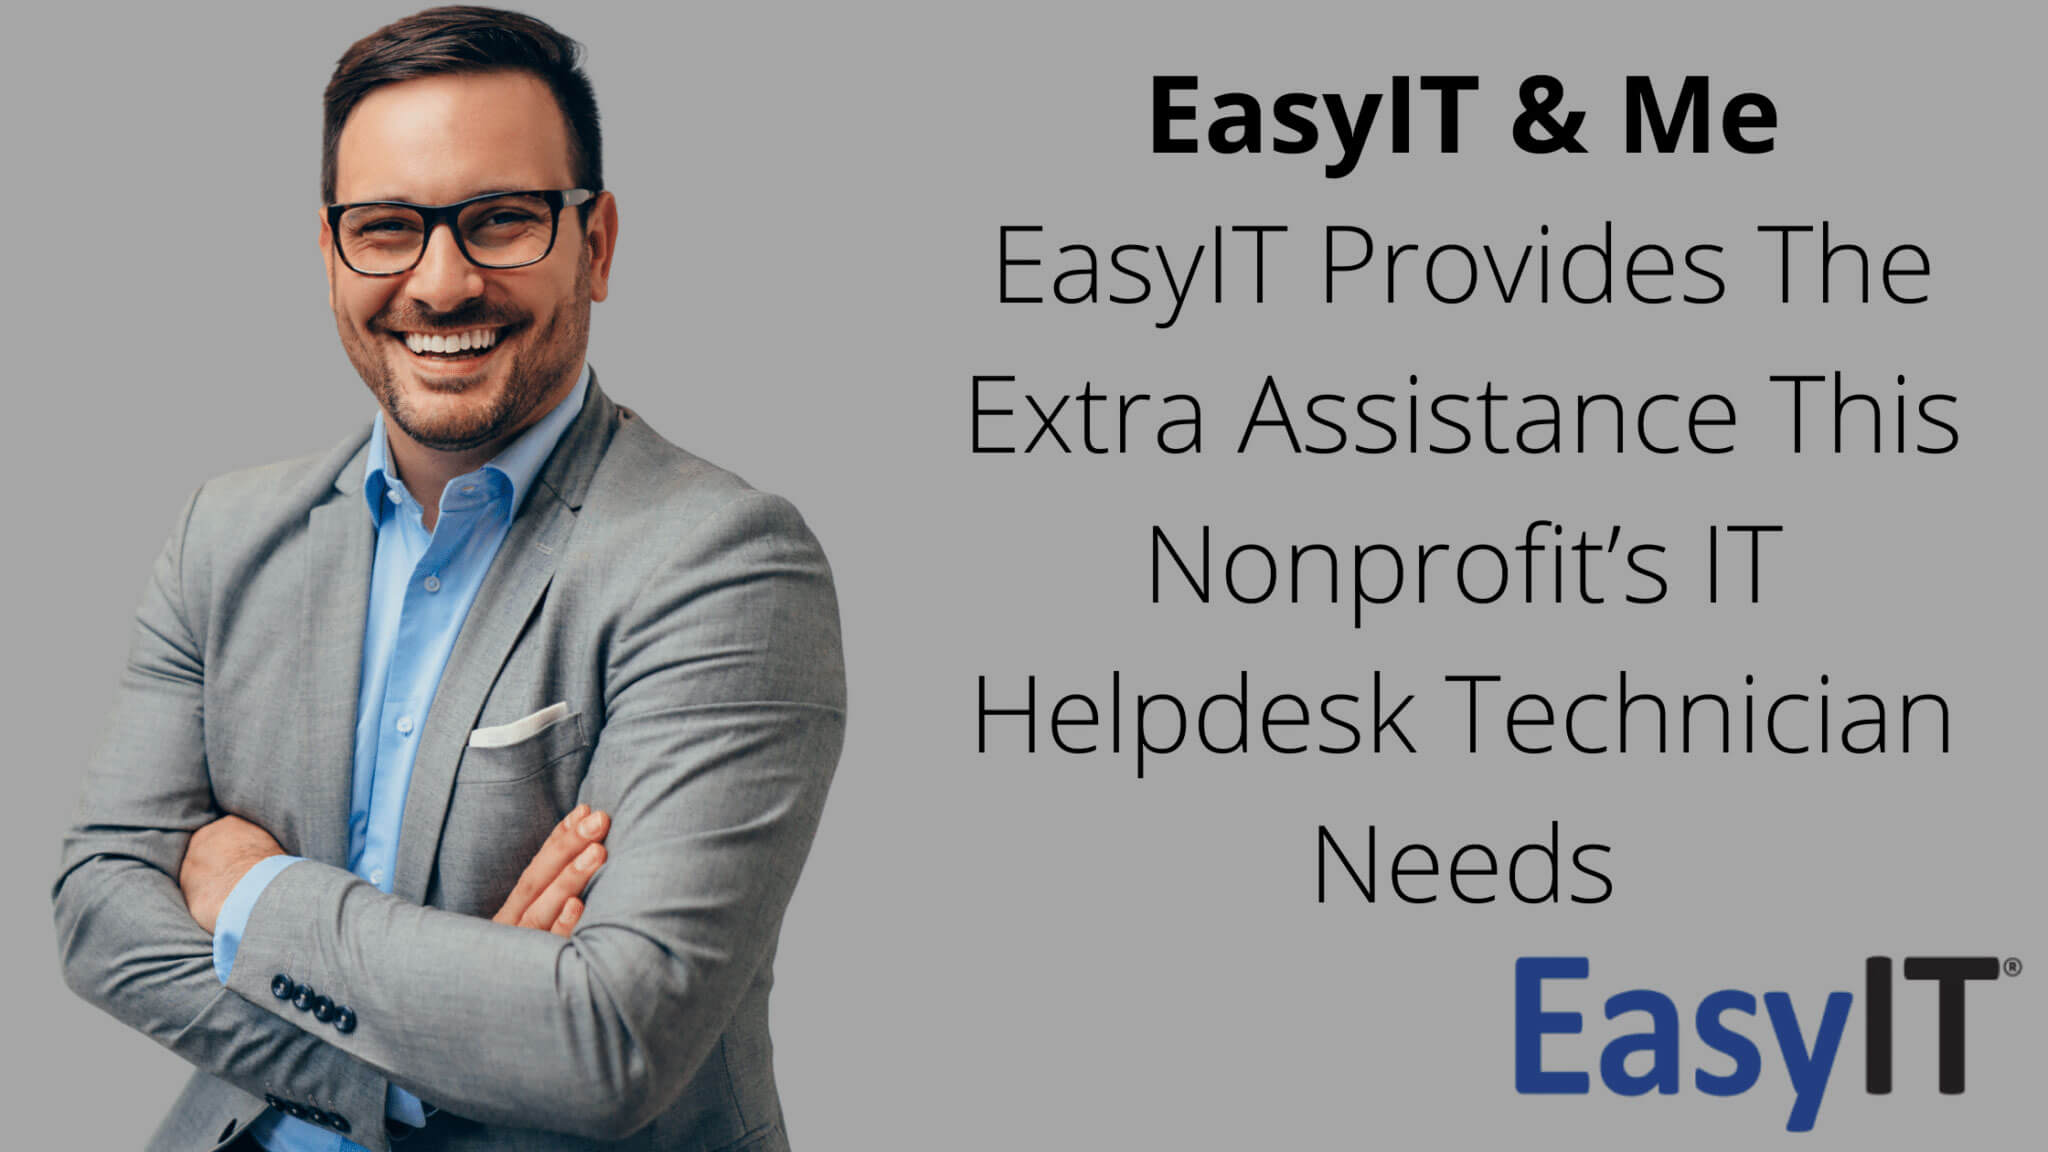 EasyIT & Me EasyIT Provides The Extra Assistance This Nonprofit's IT Helpdesk Technician Needs